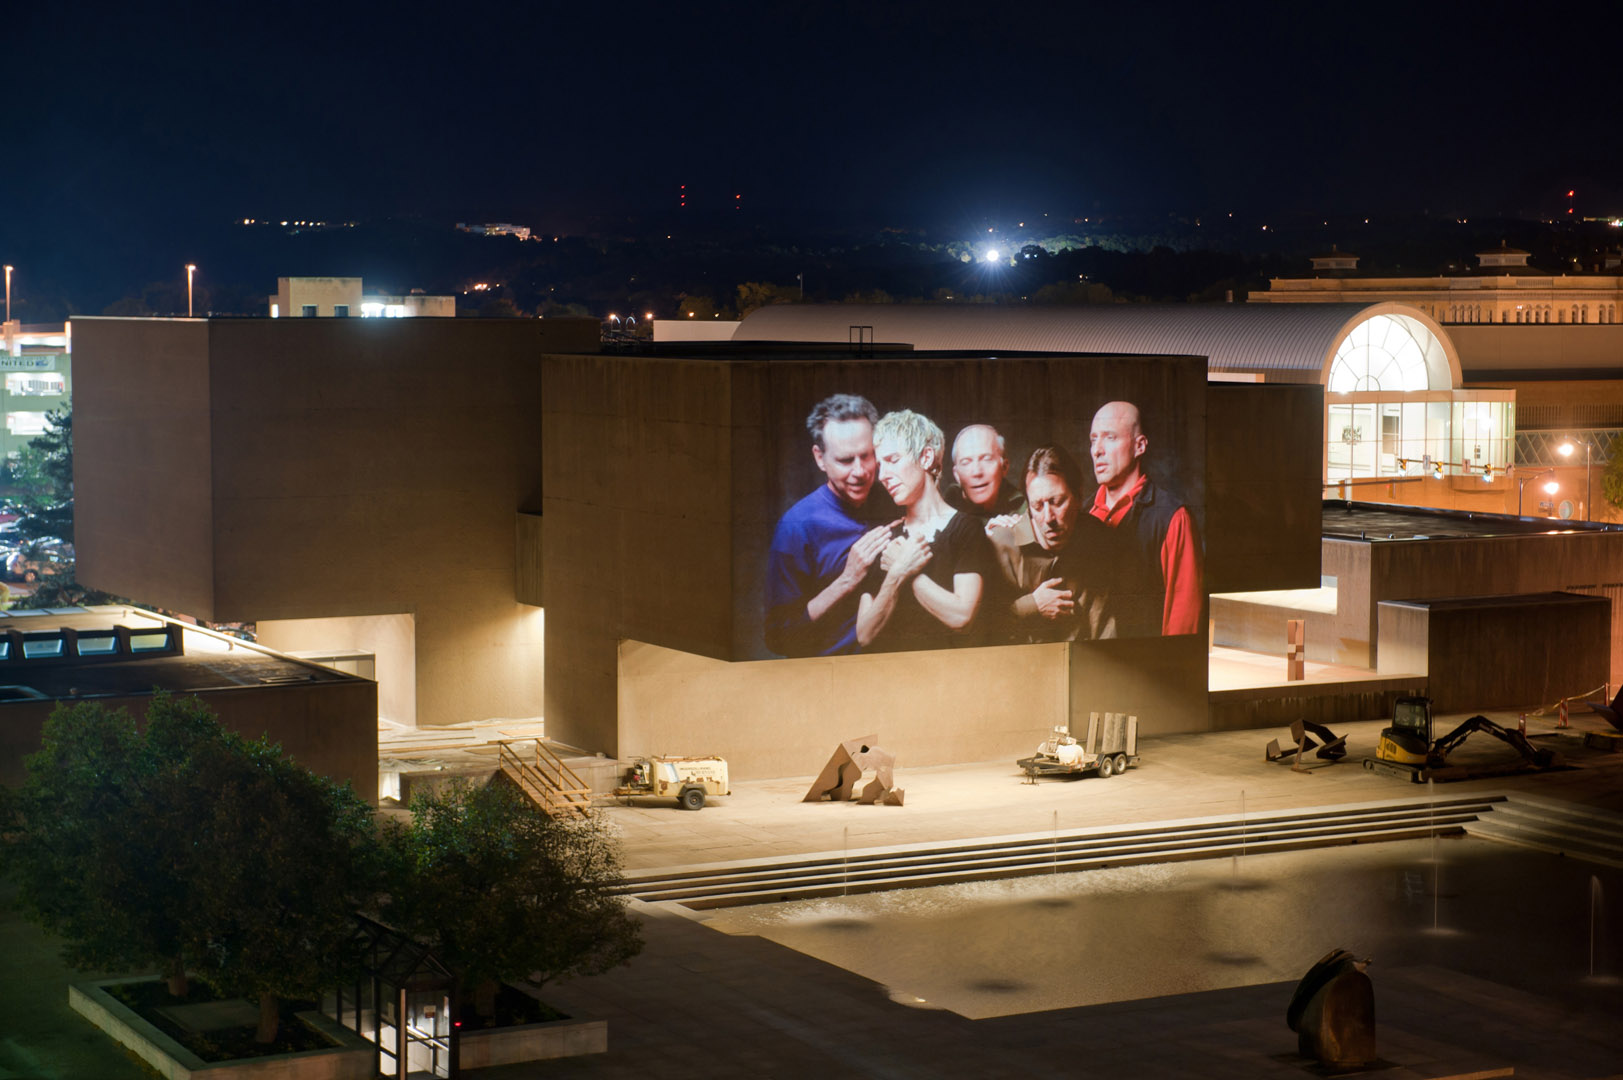 Urban Video Project Bill Viola Everson Museum Exterior From roof Of Steam Station